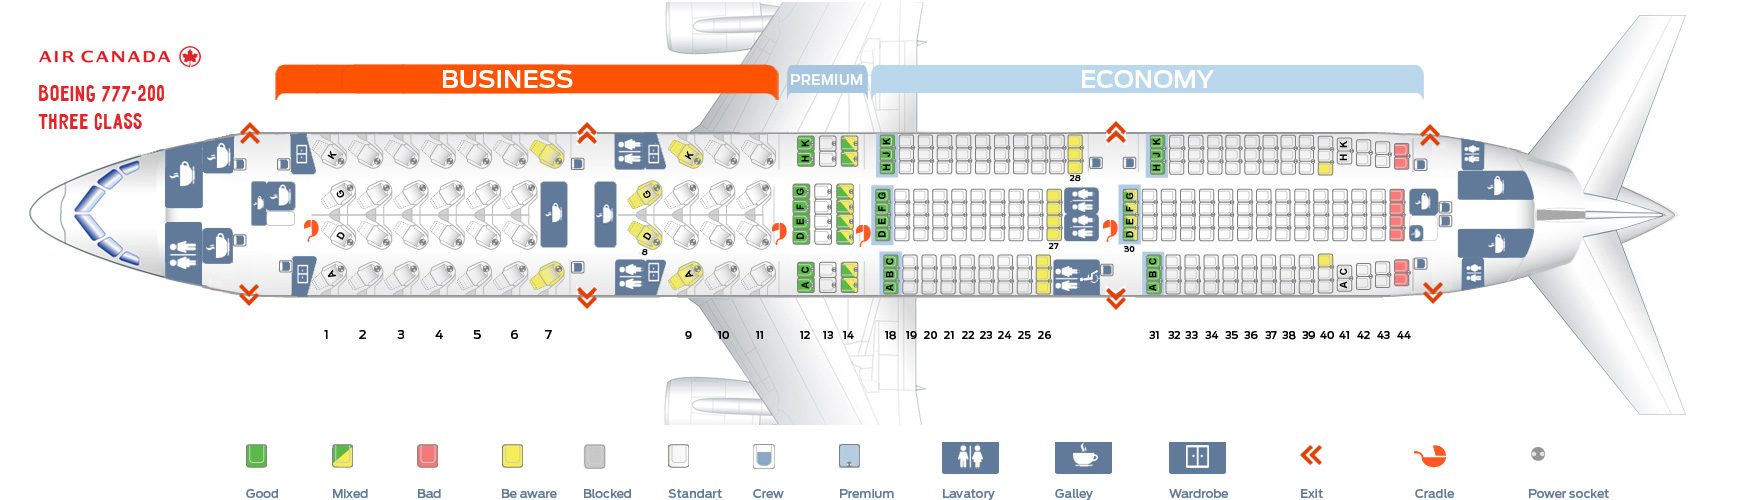 Seat map Air Canada Boeing 777-200 Three Class